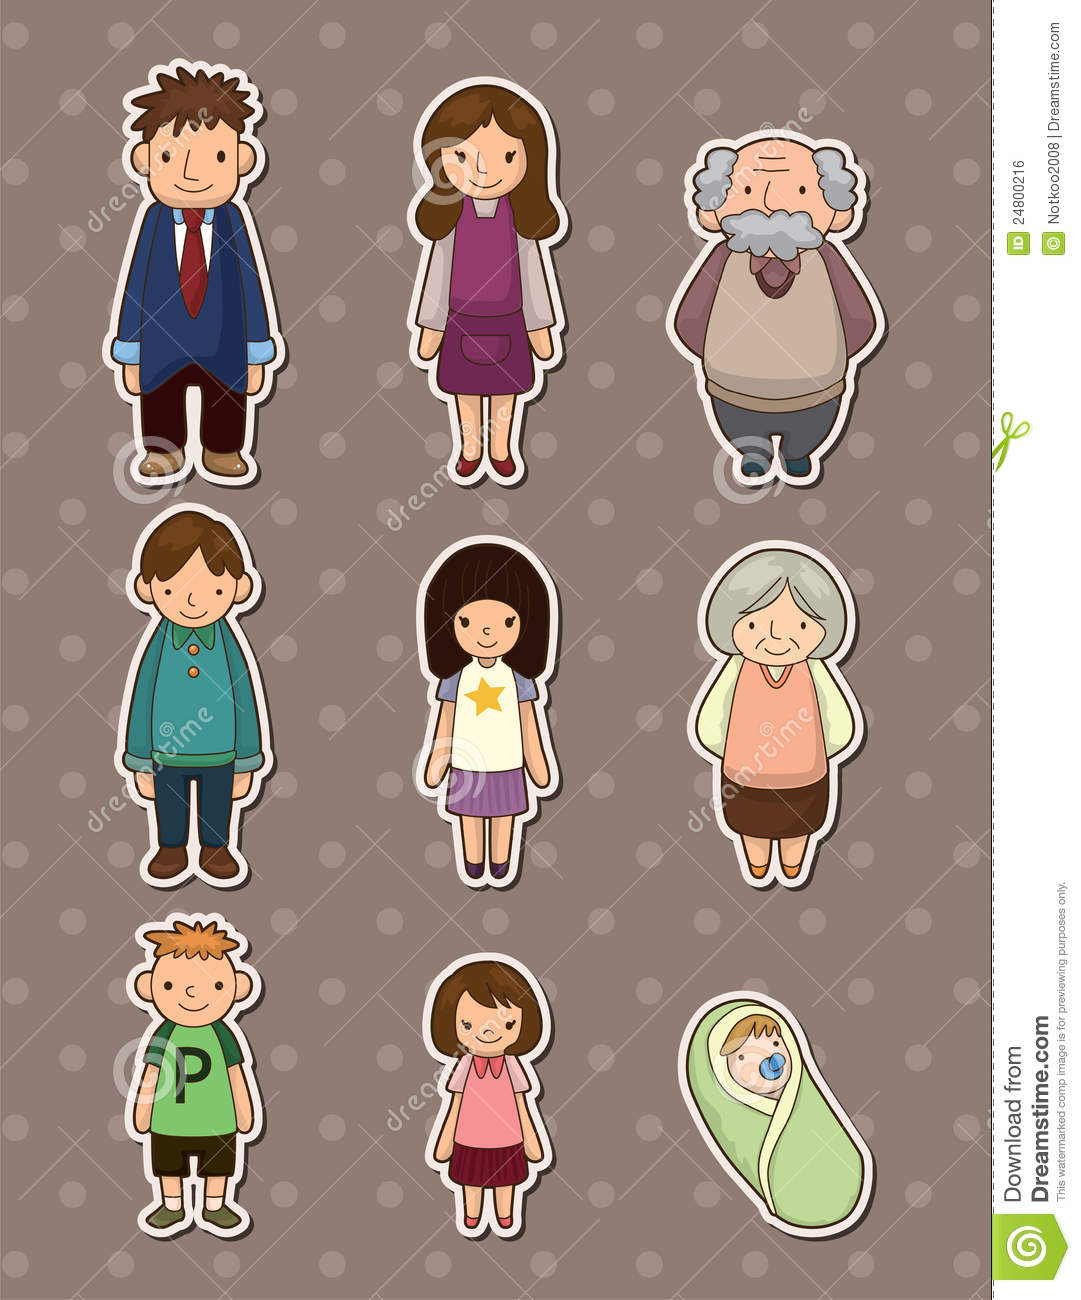 Family Stickers For Cars Vector Family stickers cartoon vectorFamily Stickers For Cars Vector